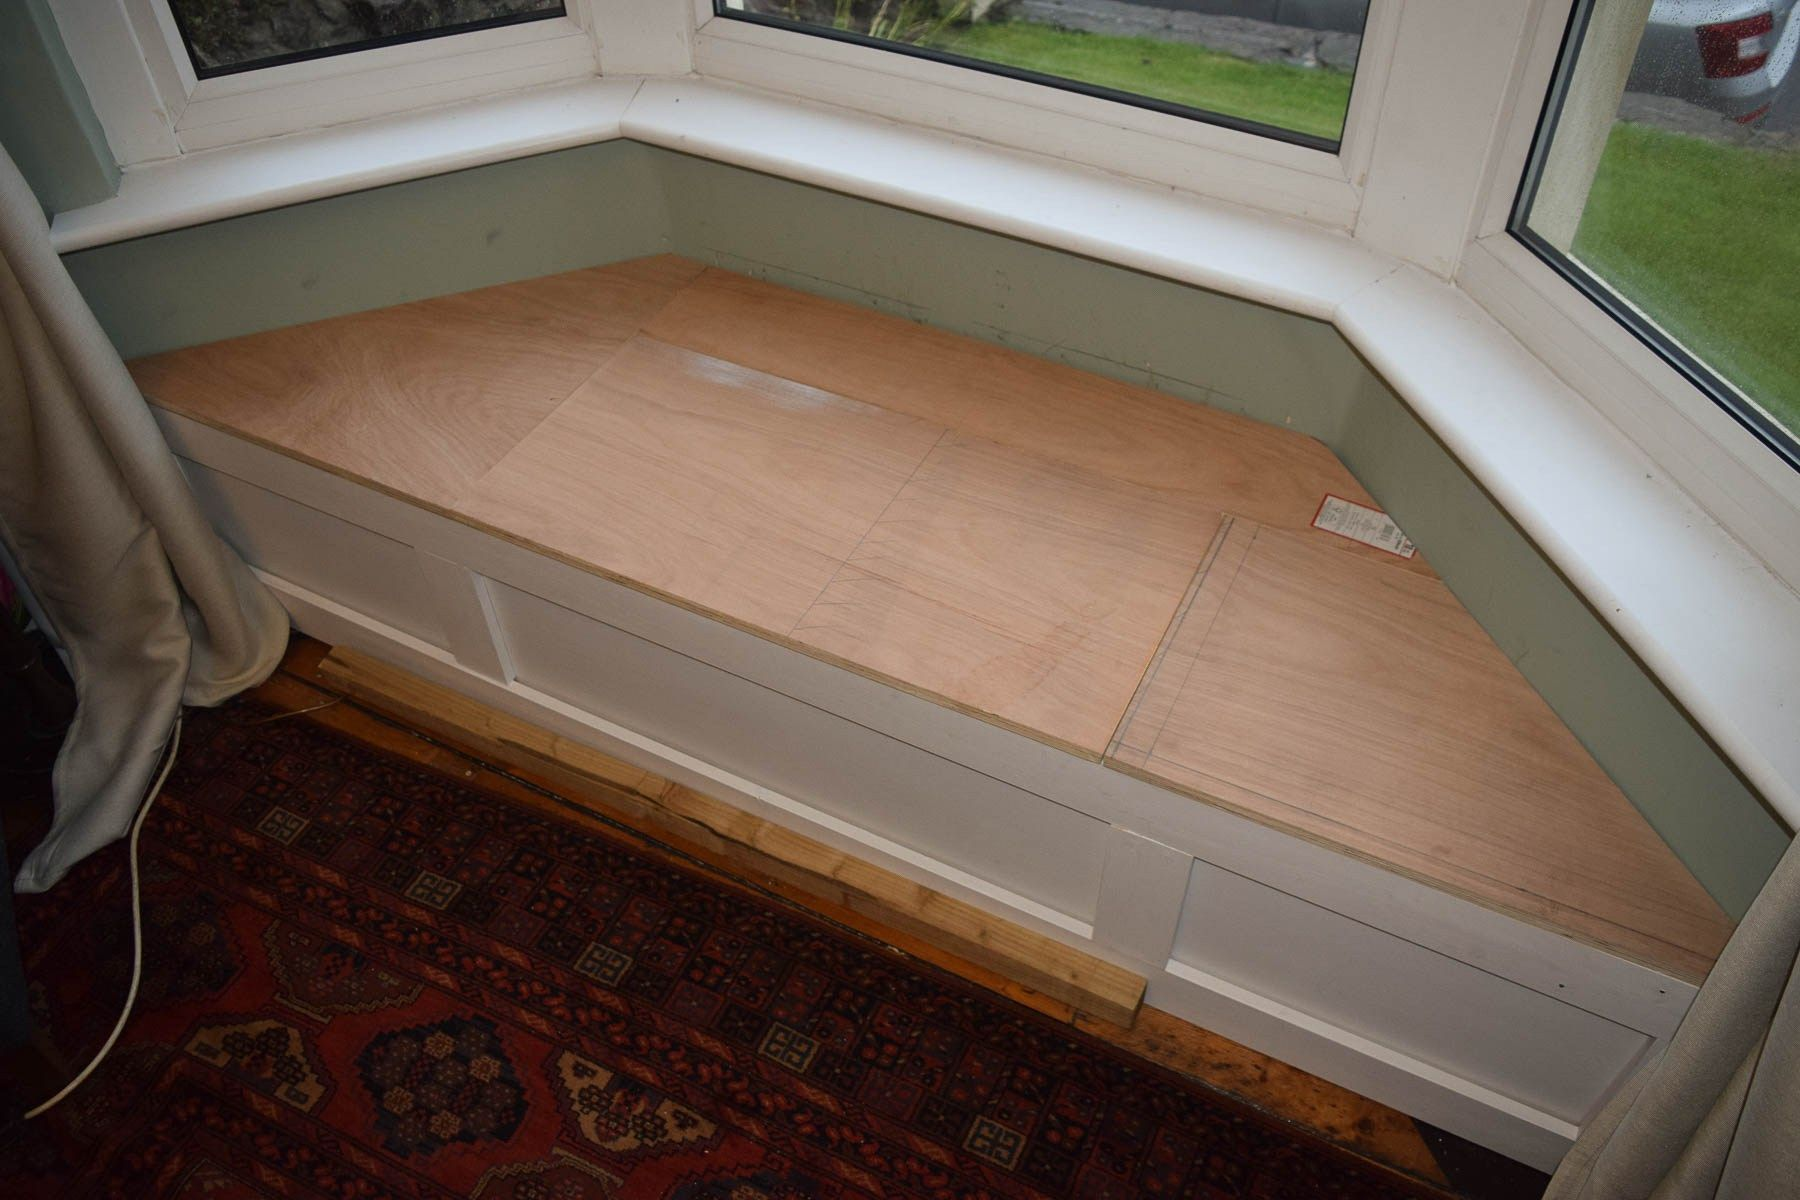 Fabulous How To Build A Victorian Bay Window Seat With Storage Gmtry Best Dining Table And Chair Ideas Images Gmtryco